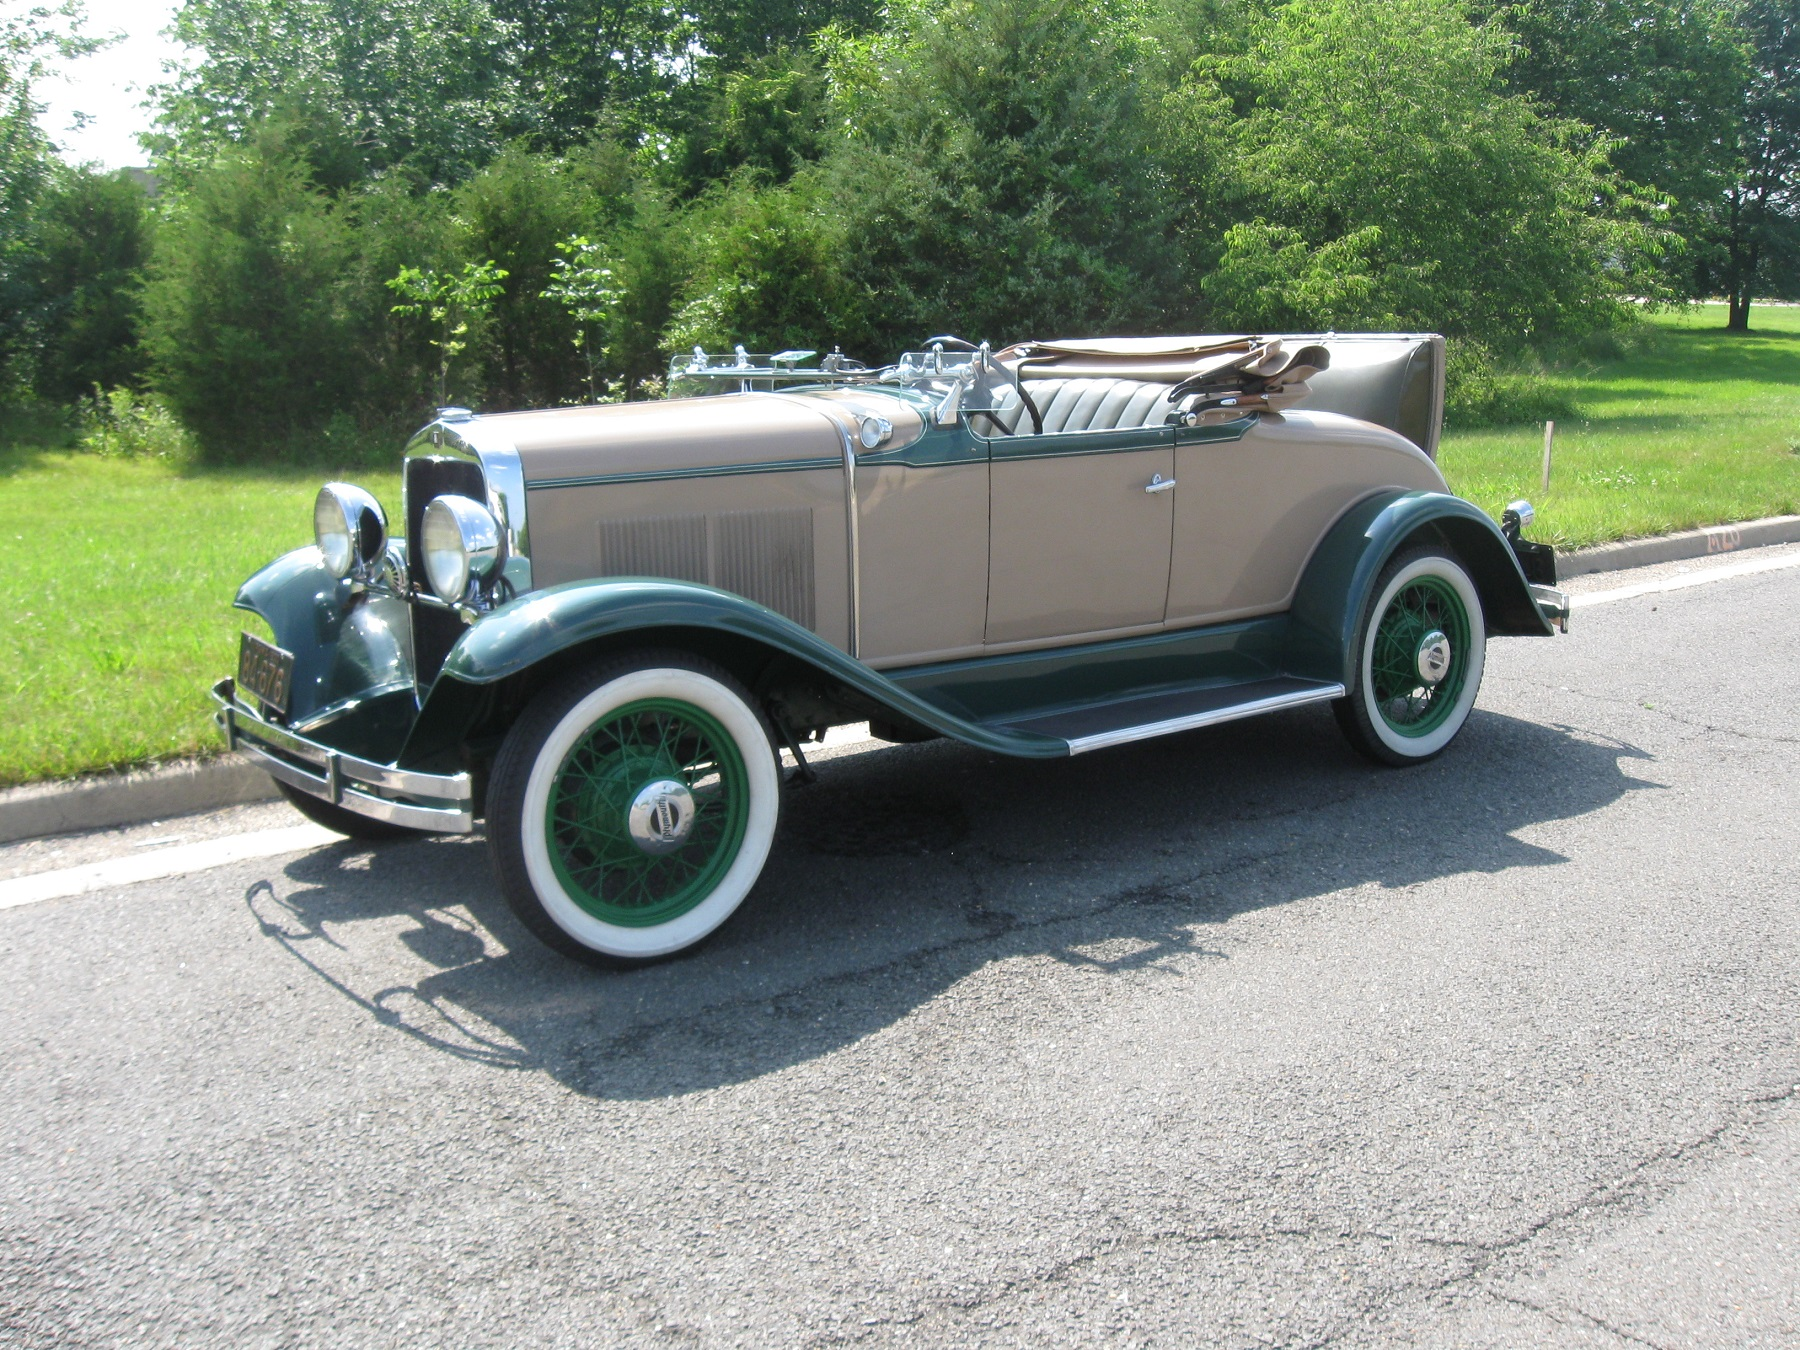 1930 plymouth built to battle ford, chevy classic classicsthe new plymouth was a sales success and by 1930, despite the great depression, plymouth sales were soaring a 2,280 pound two door sport roadster,